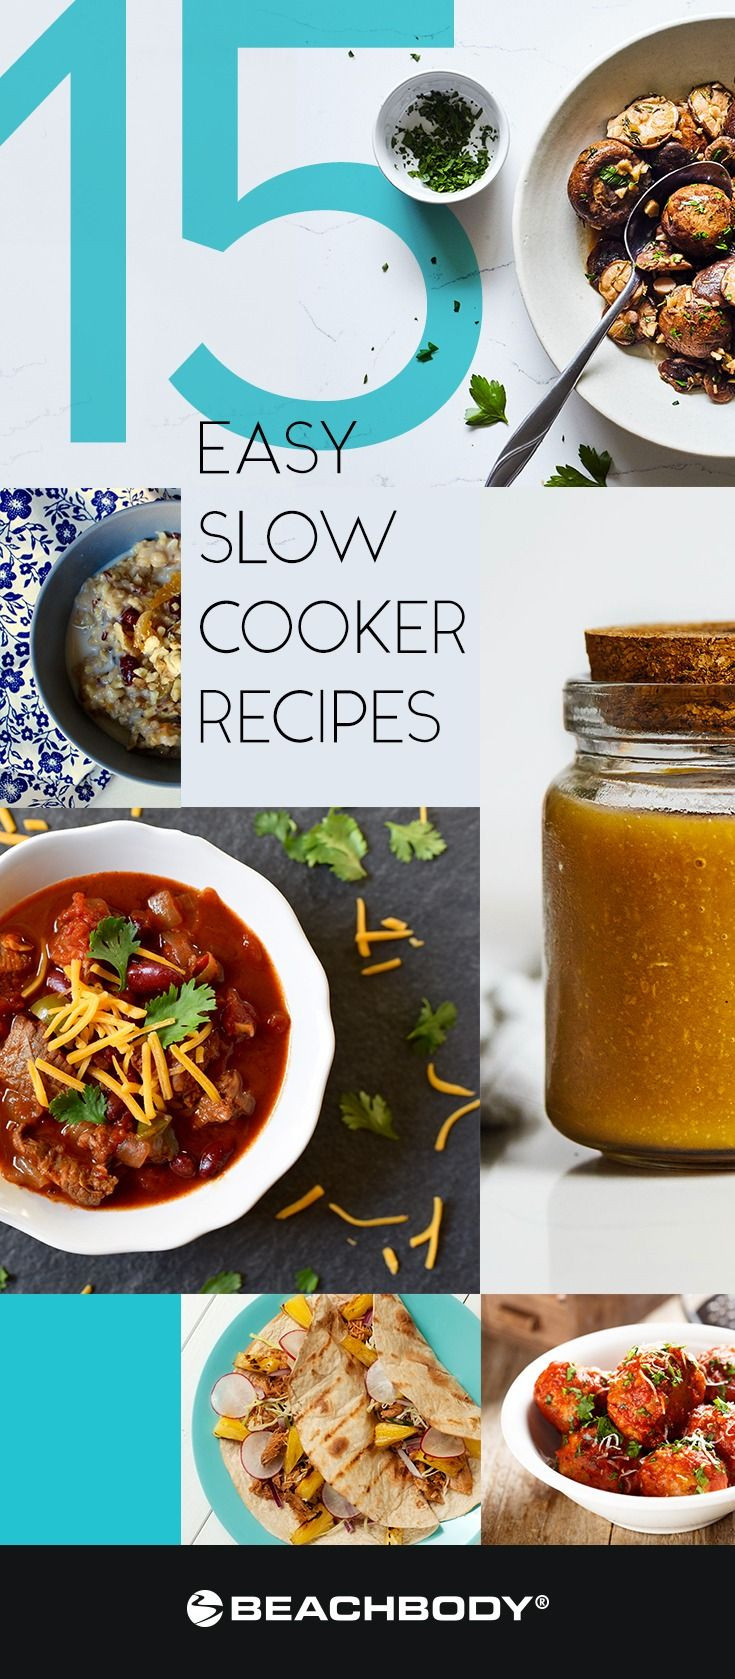 Easy Slow Cooker Recipes Healthy  17 Best images about Healthy Recipes on Pinterest